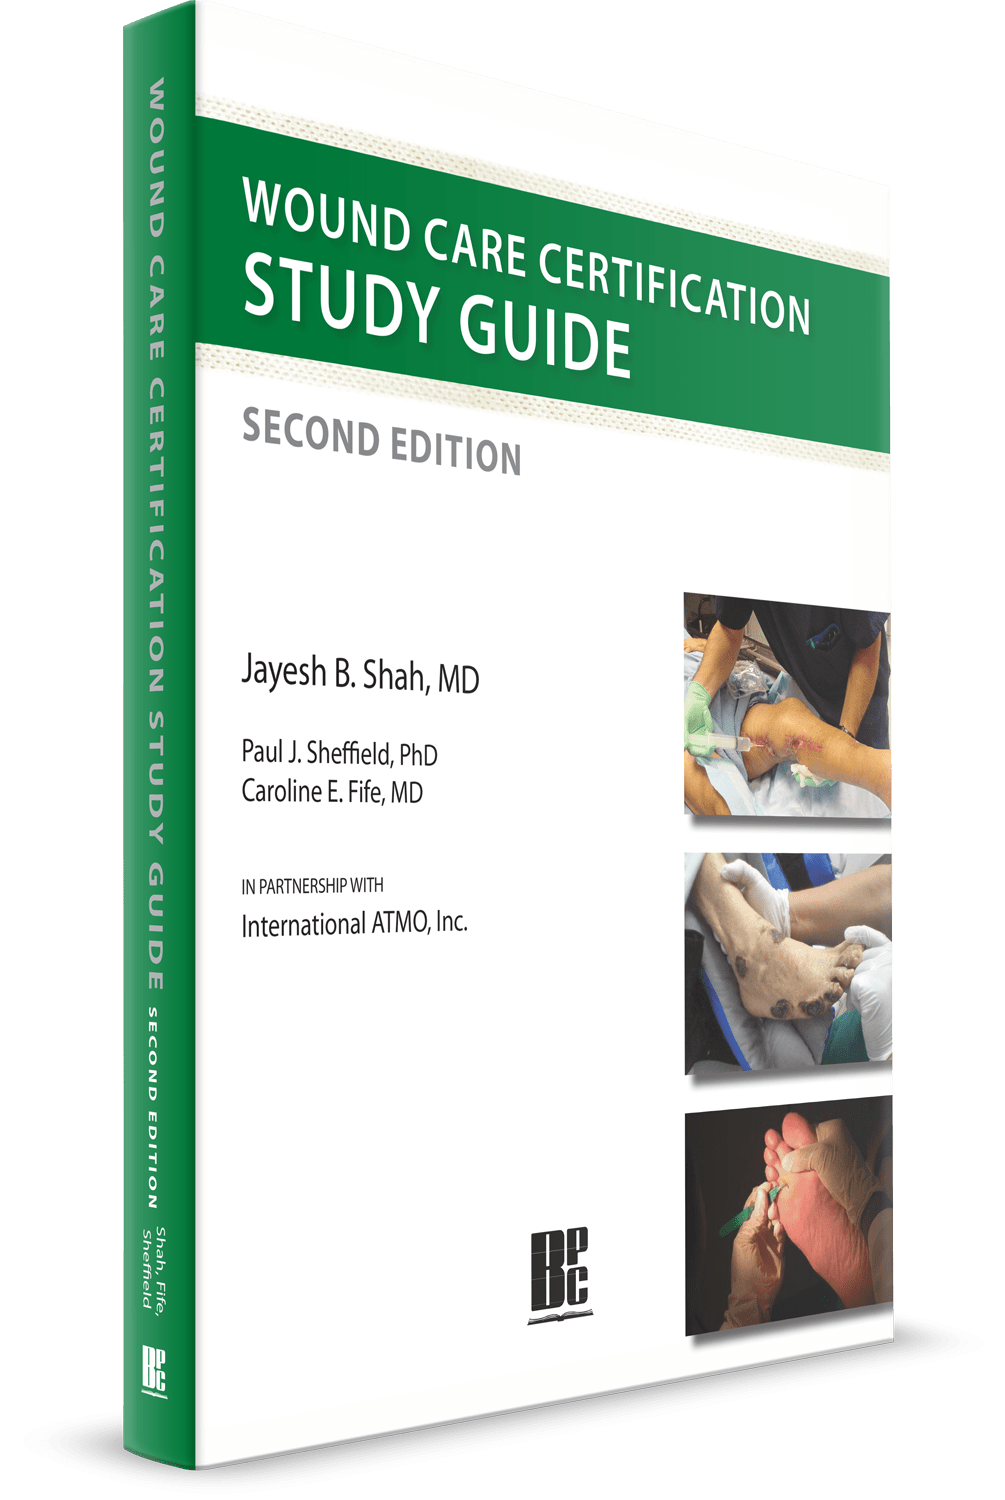 Best Publishing Company - Wound Care Certification Study Guide ...